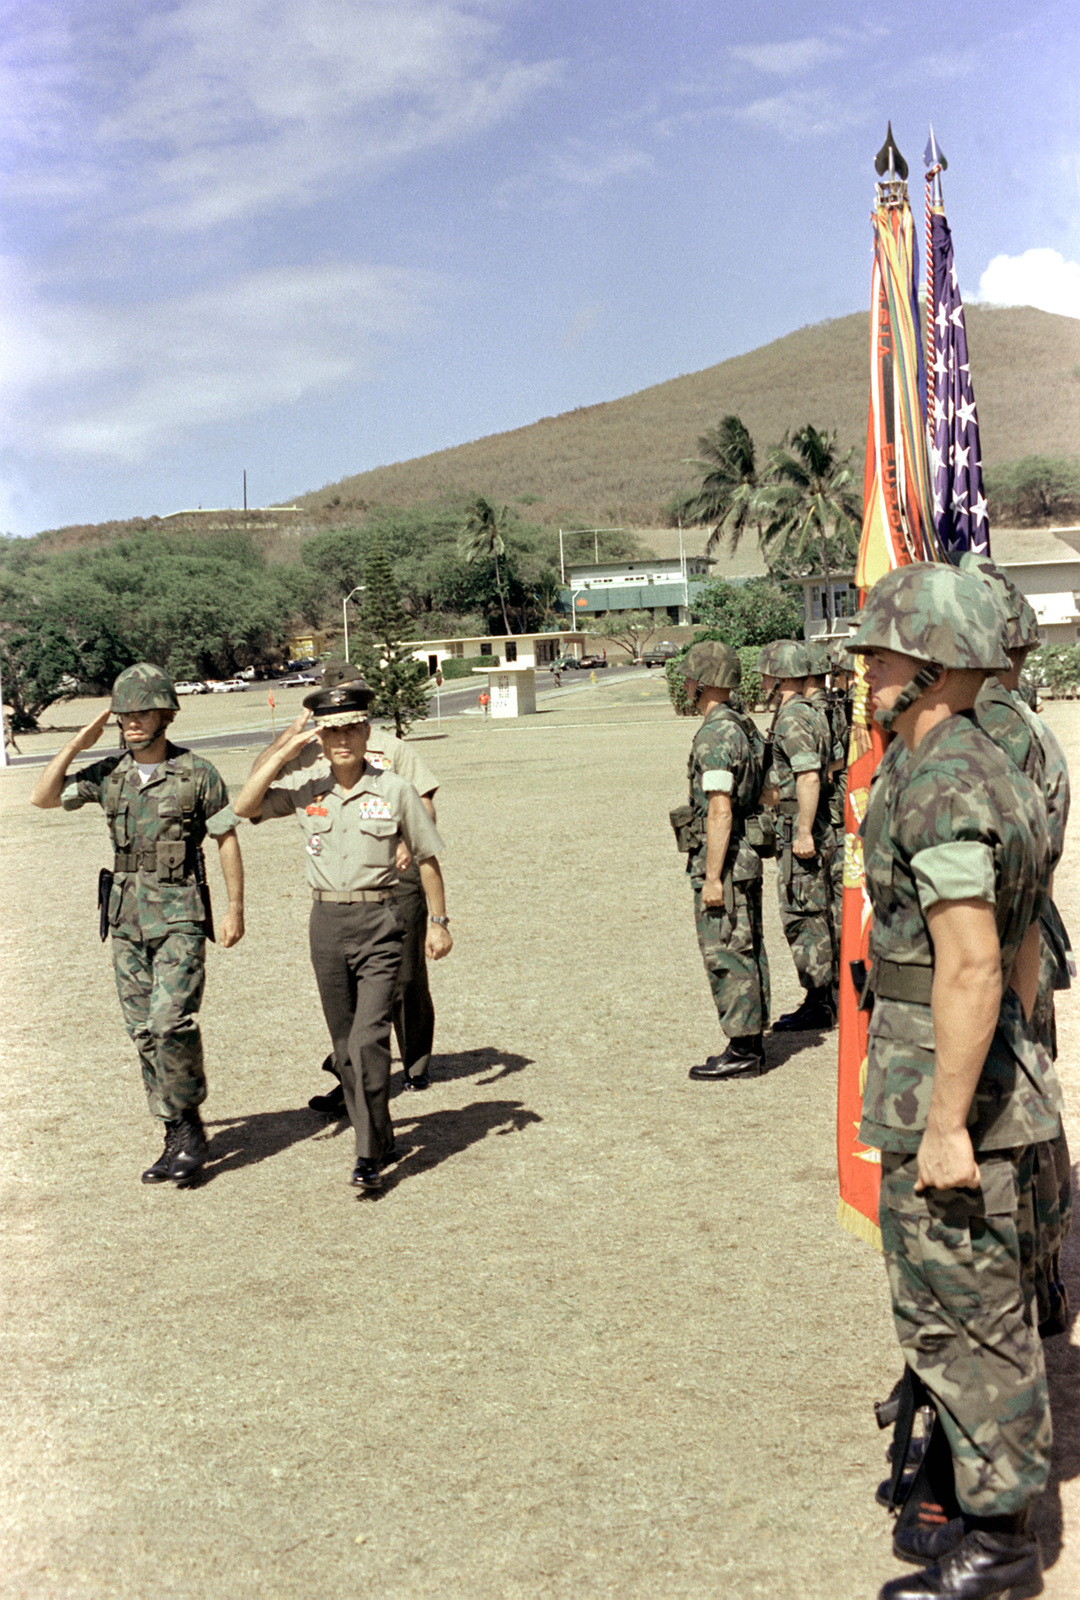 LGEN Choi Ki Duk, second vice chief of naval operations, Korea, salutes the flag as he passes the 1ST Marine Brigade Honor Guard welcoming him for a visit